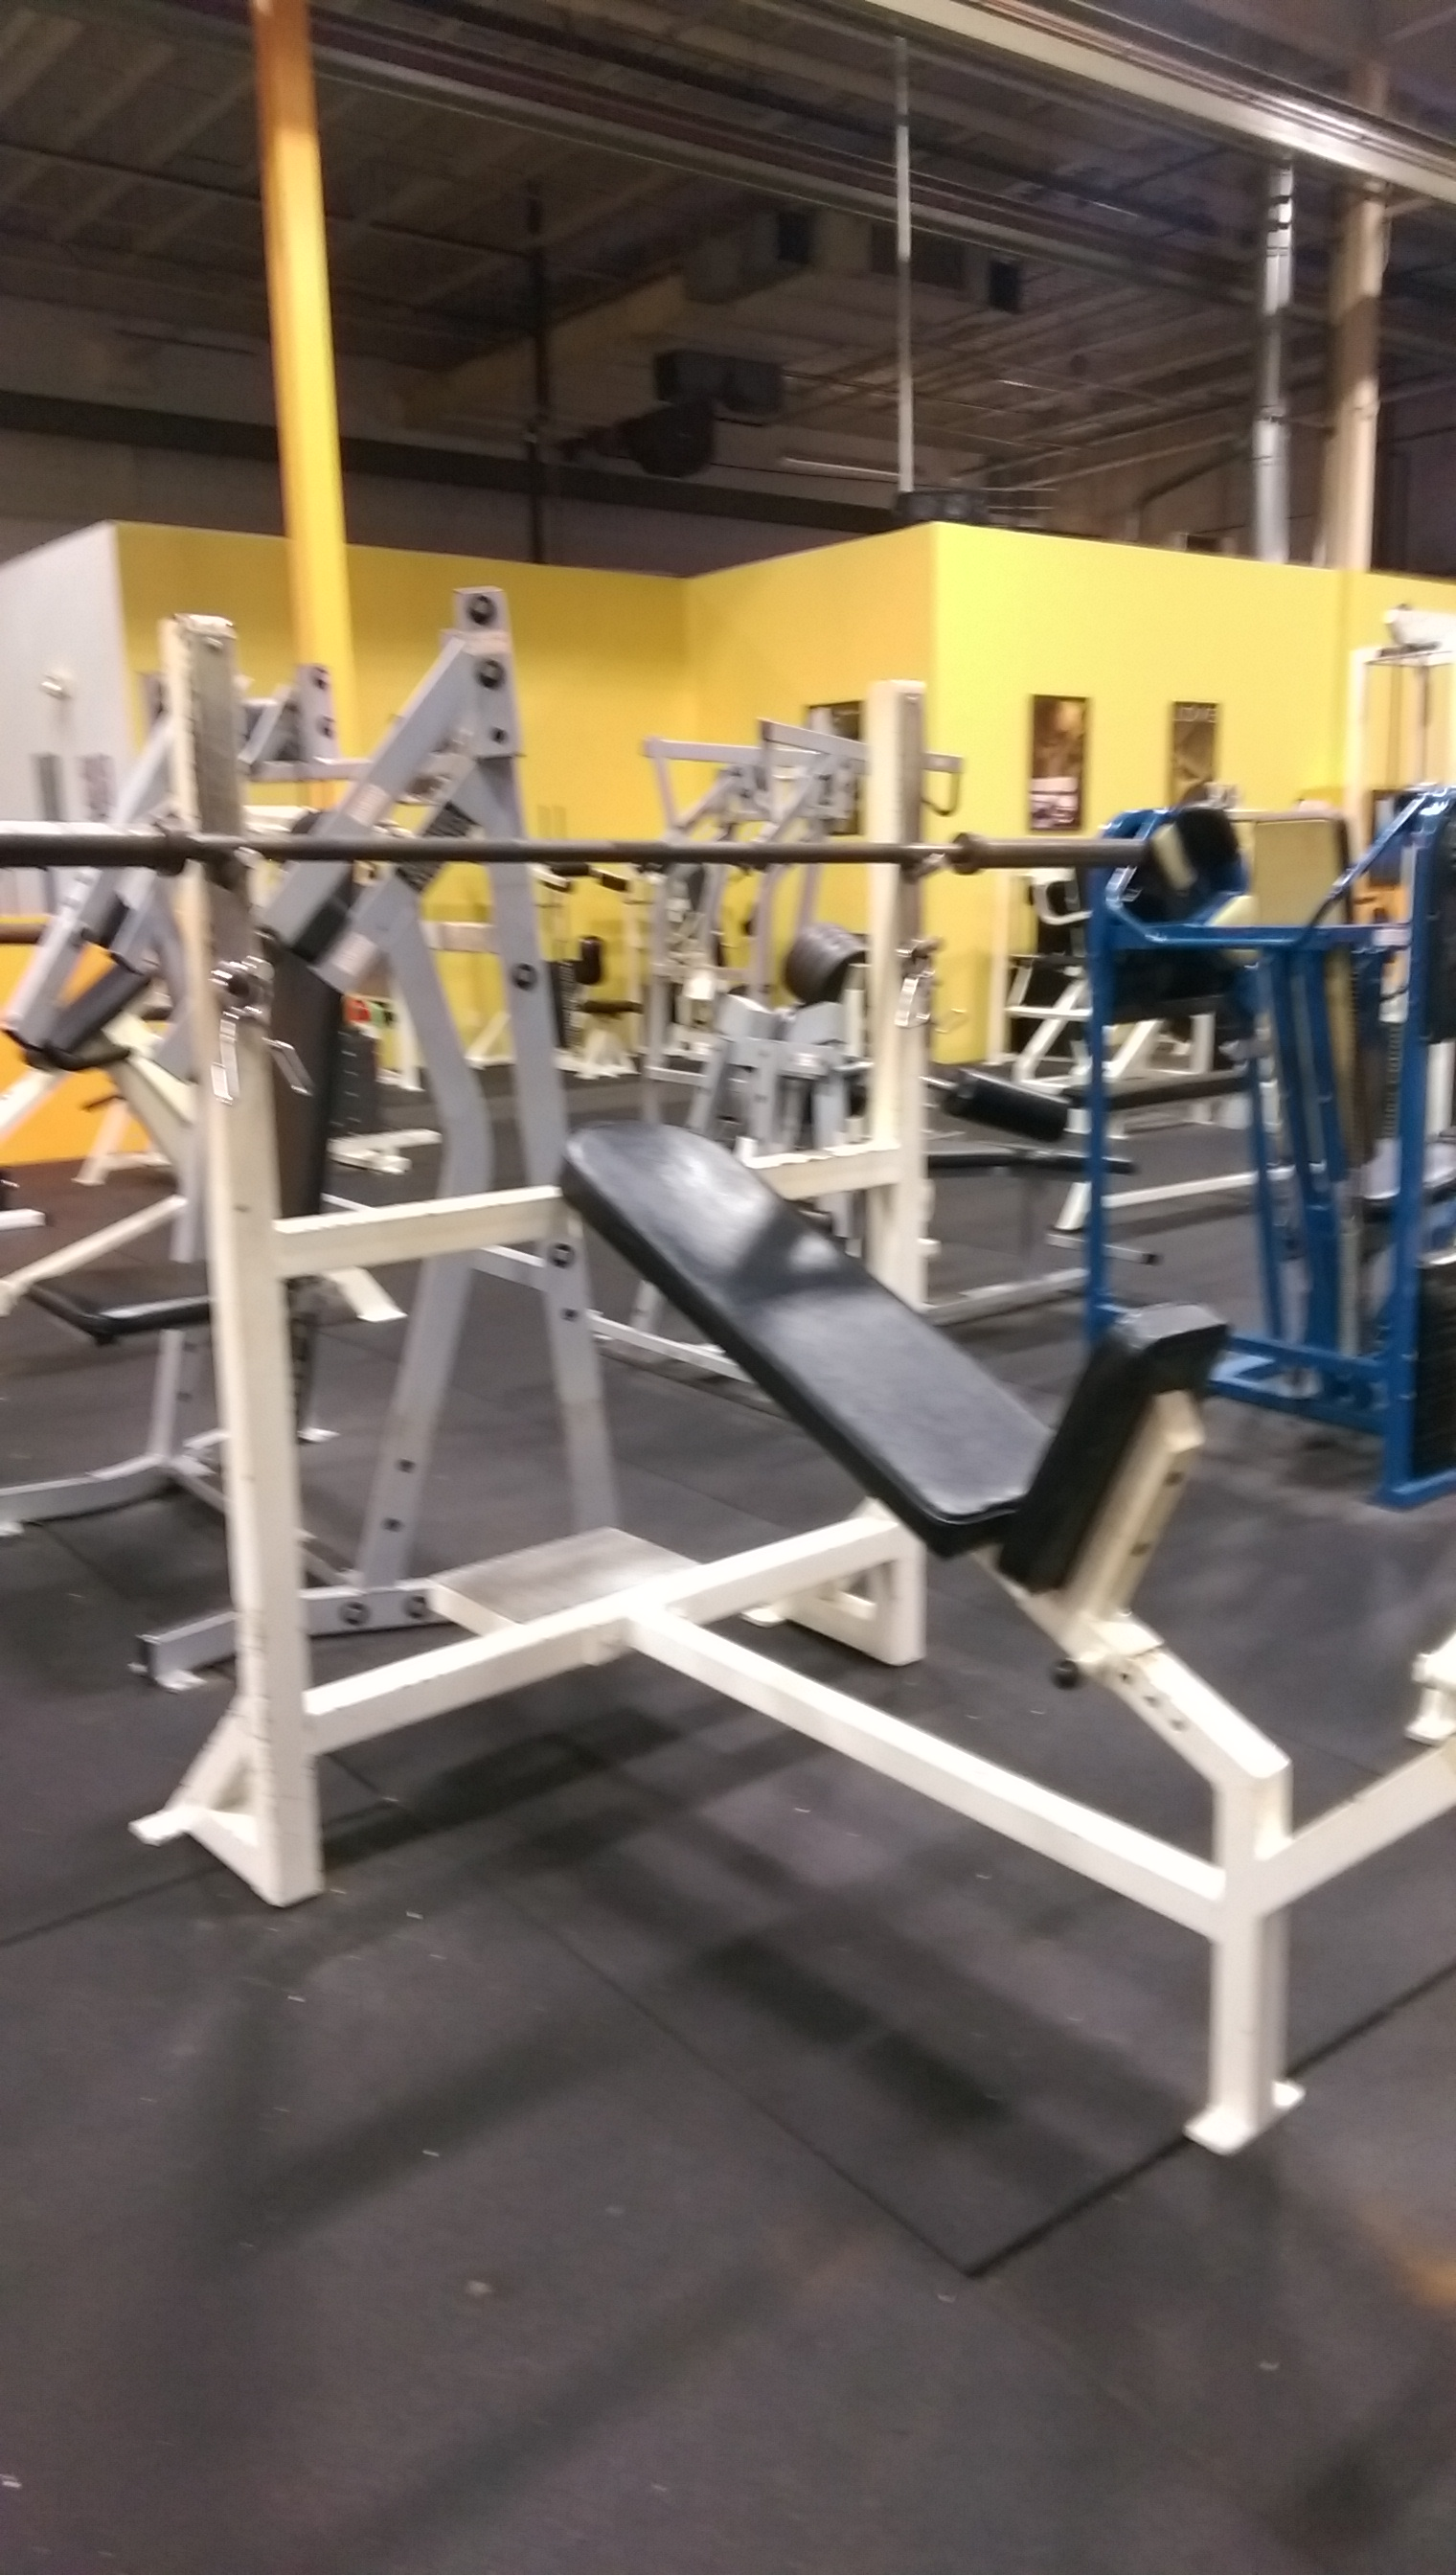 Used Fitness Equipment For Sale Big Fitness 508 336 3879 Used Fitness Equipment And Used